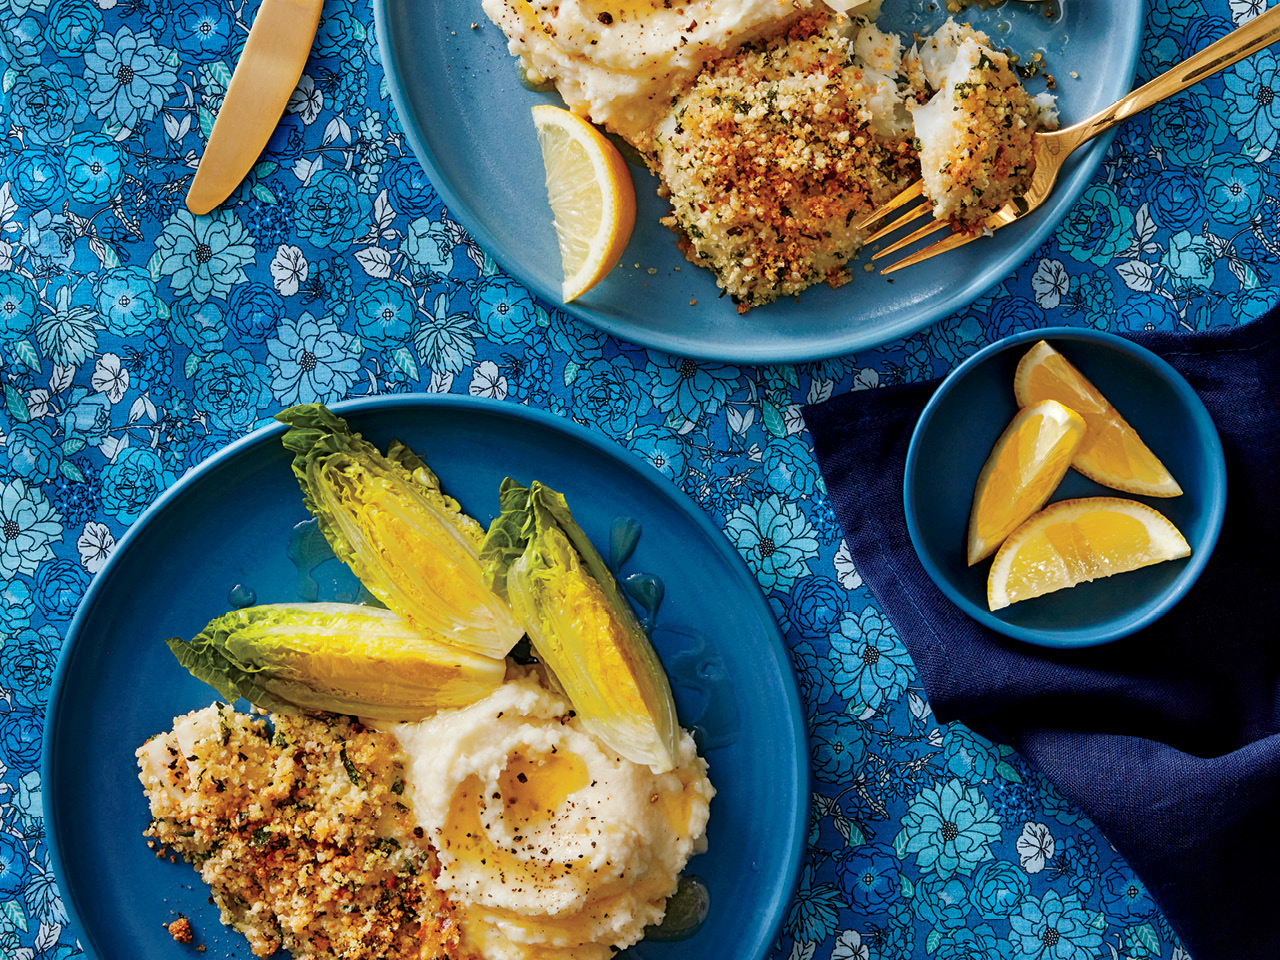 Herb-Crusted Haddock with Cauliflower Purée